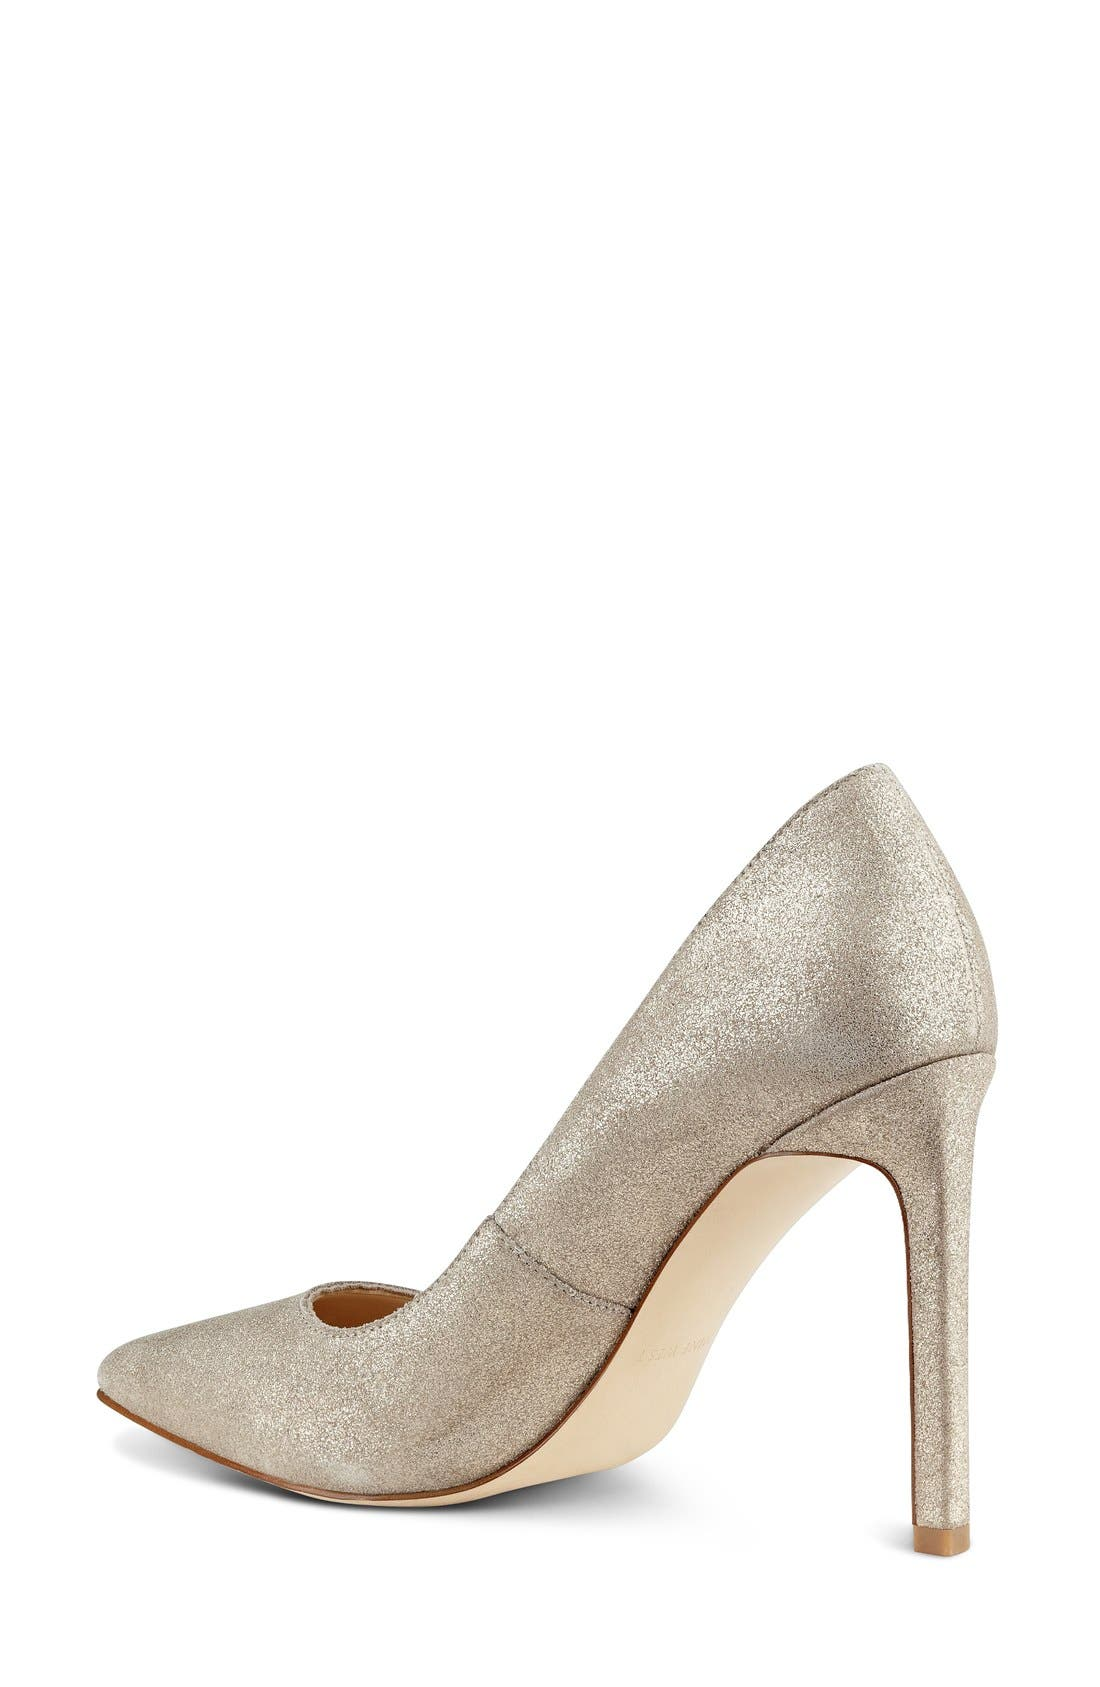 'Tatiana' Pump,                             Alternate thumbnail 2, color,                             Natural/ Gold Metallic Suede